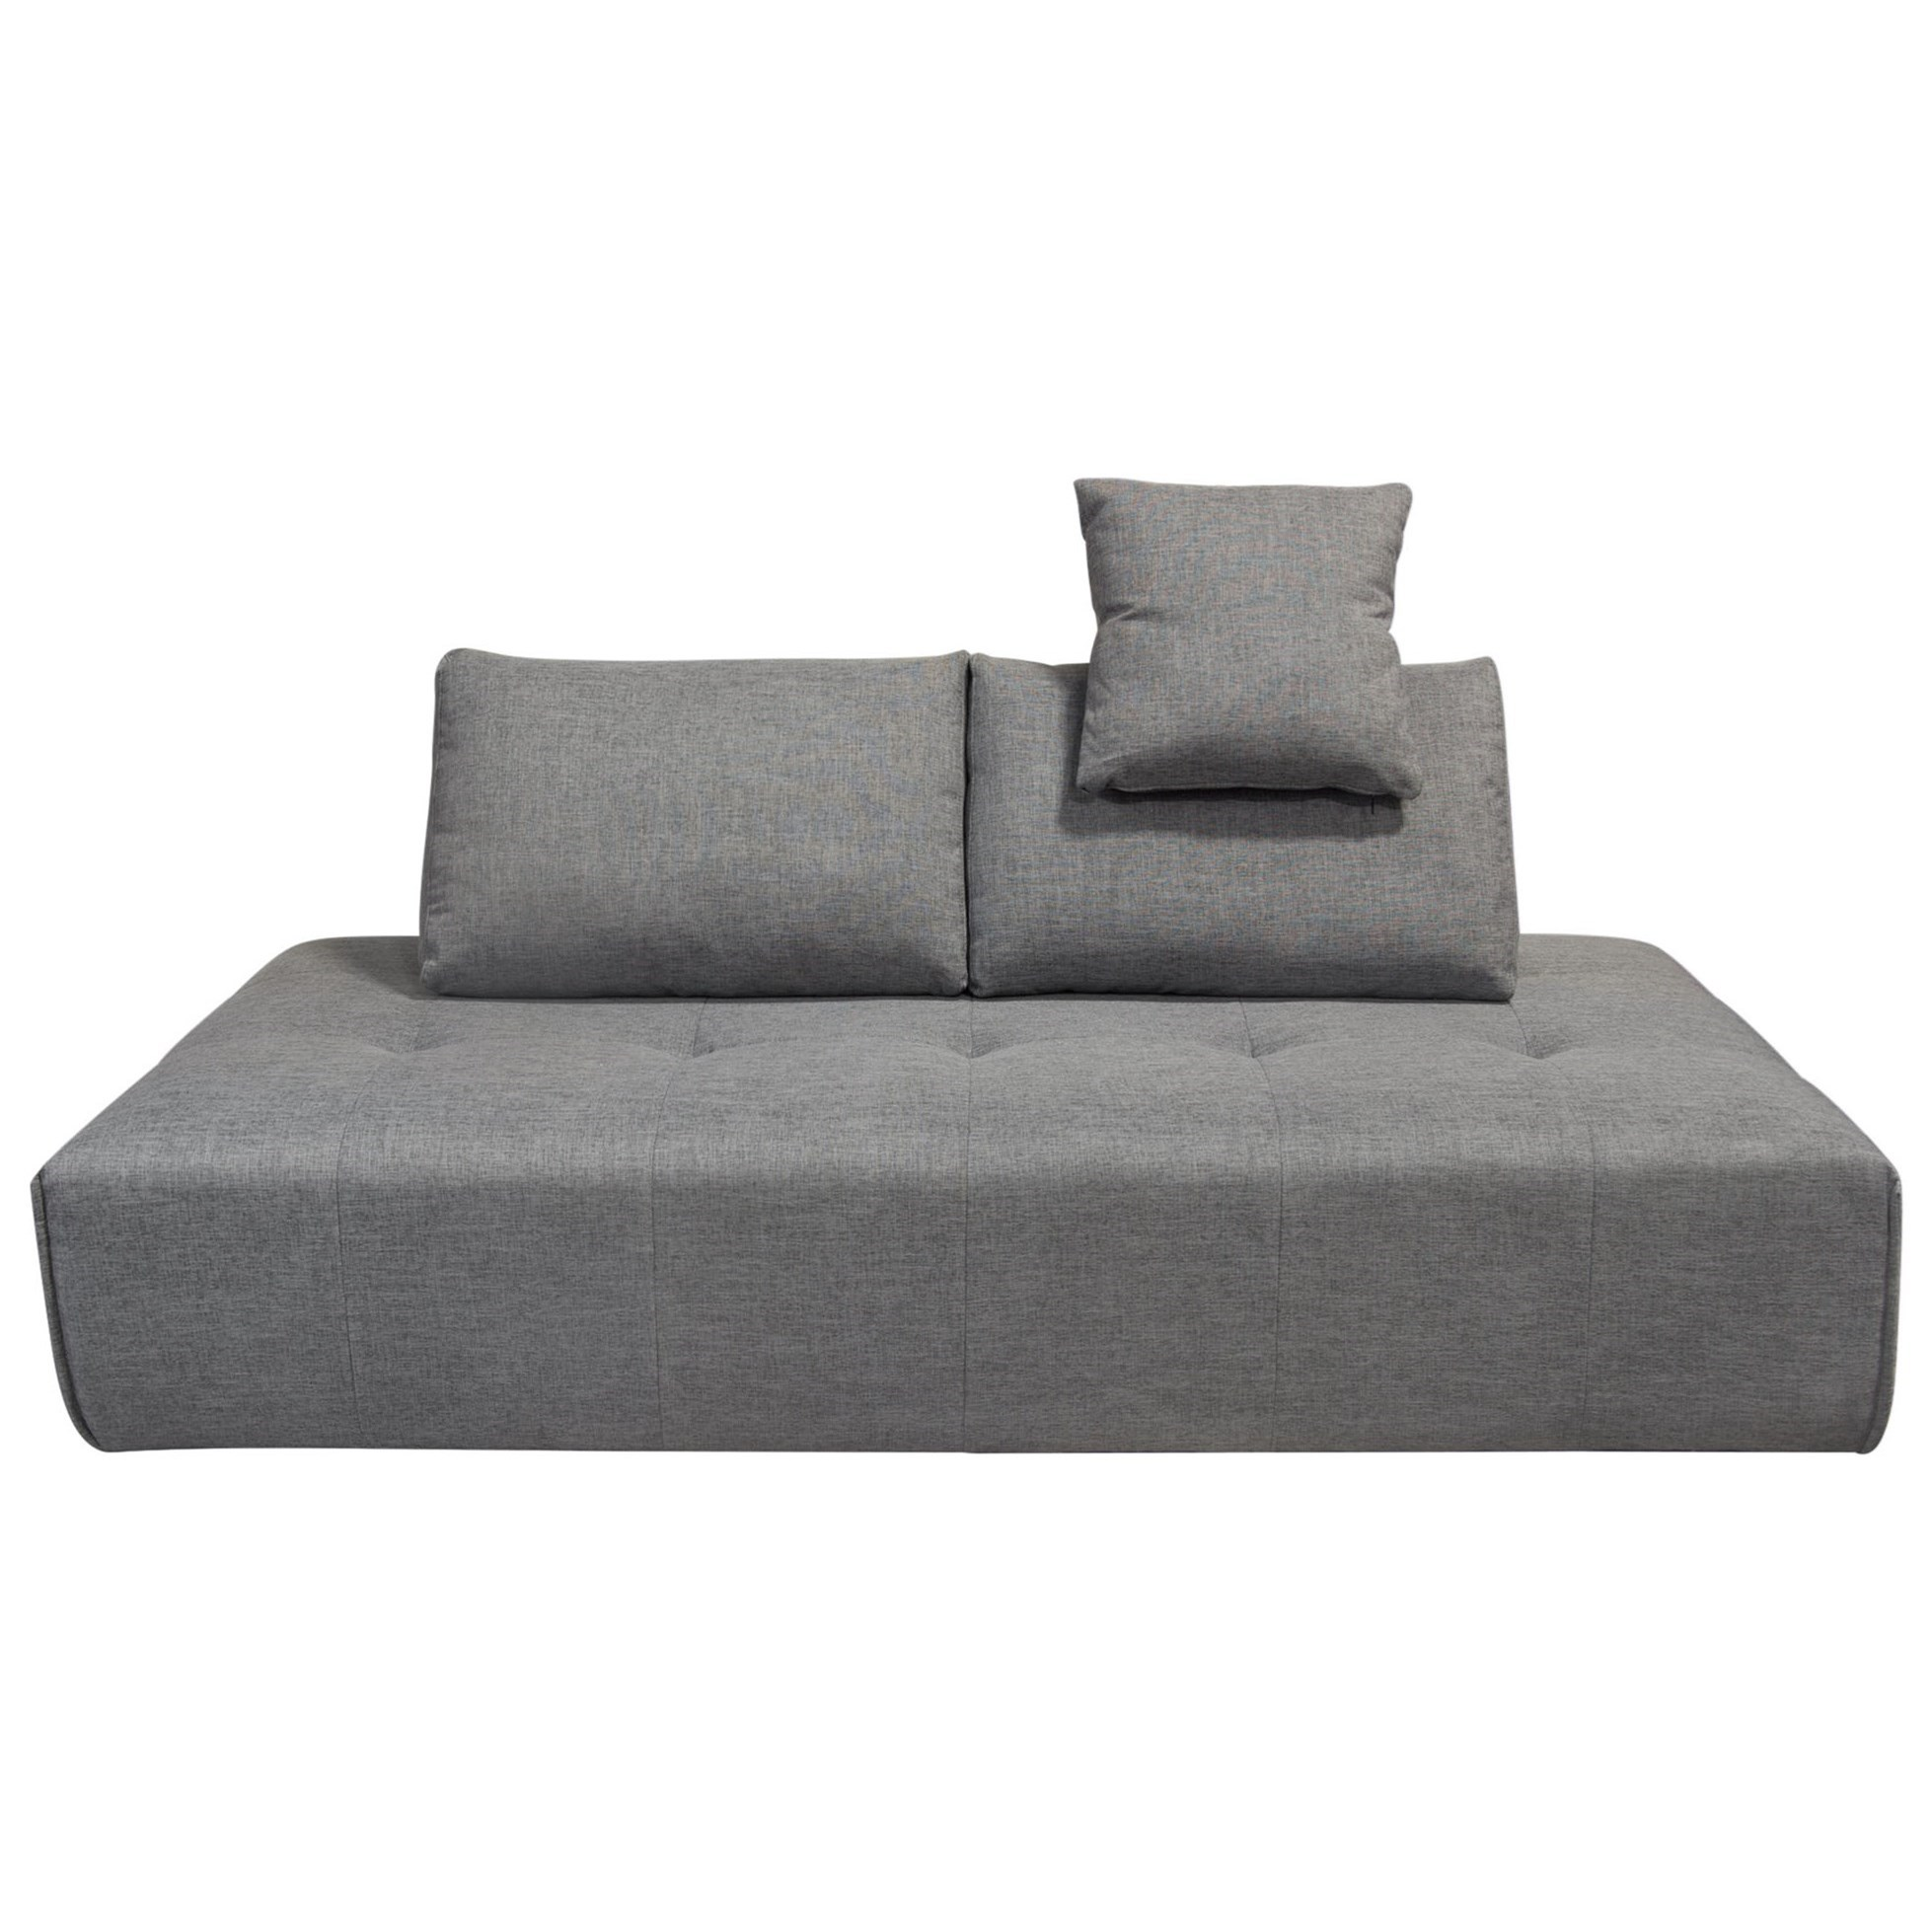 Cloud  Lounger Sofa by Diamond Sofa at Red Knot